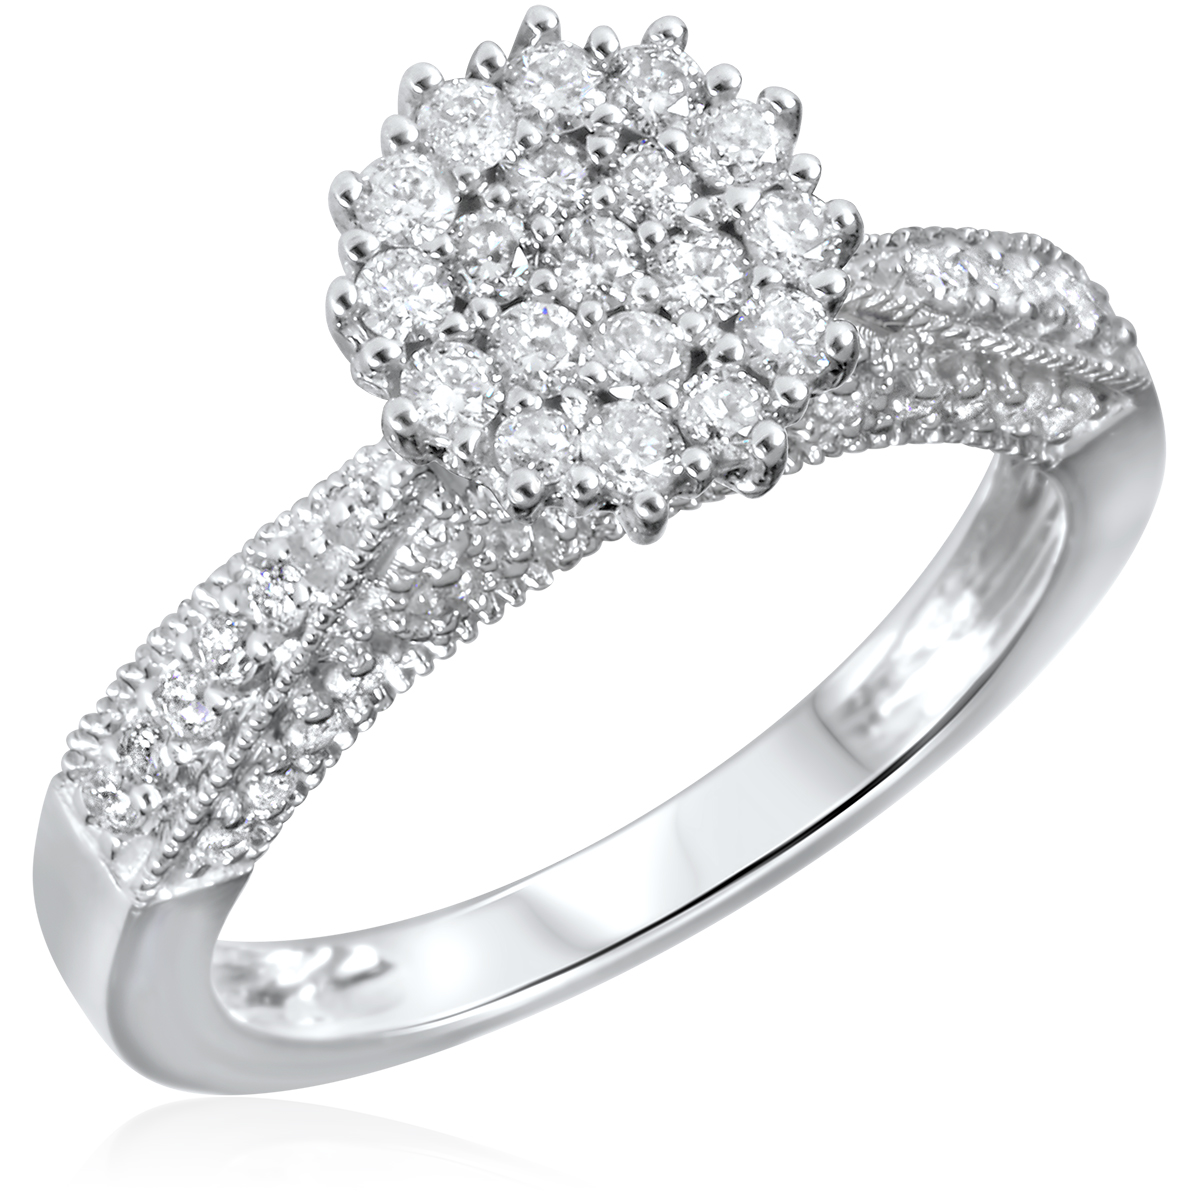 3/4 CT. T.W. Diamond Ladies Engagement Ring 14K White Gold- Size 8